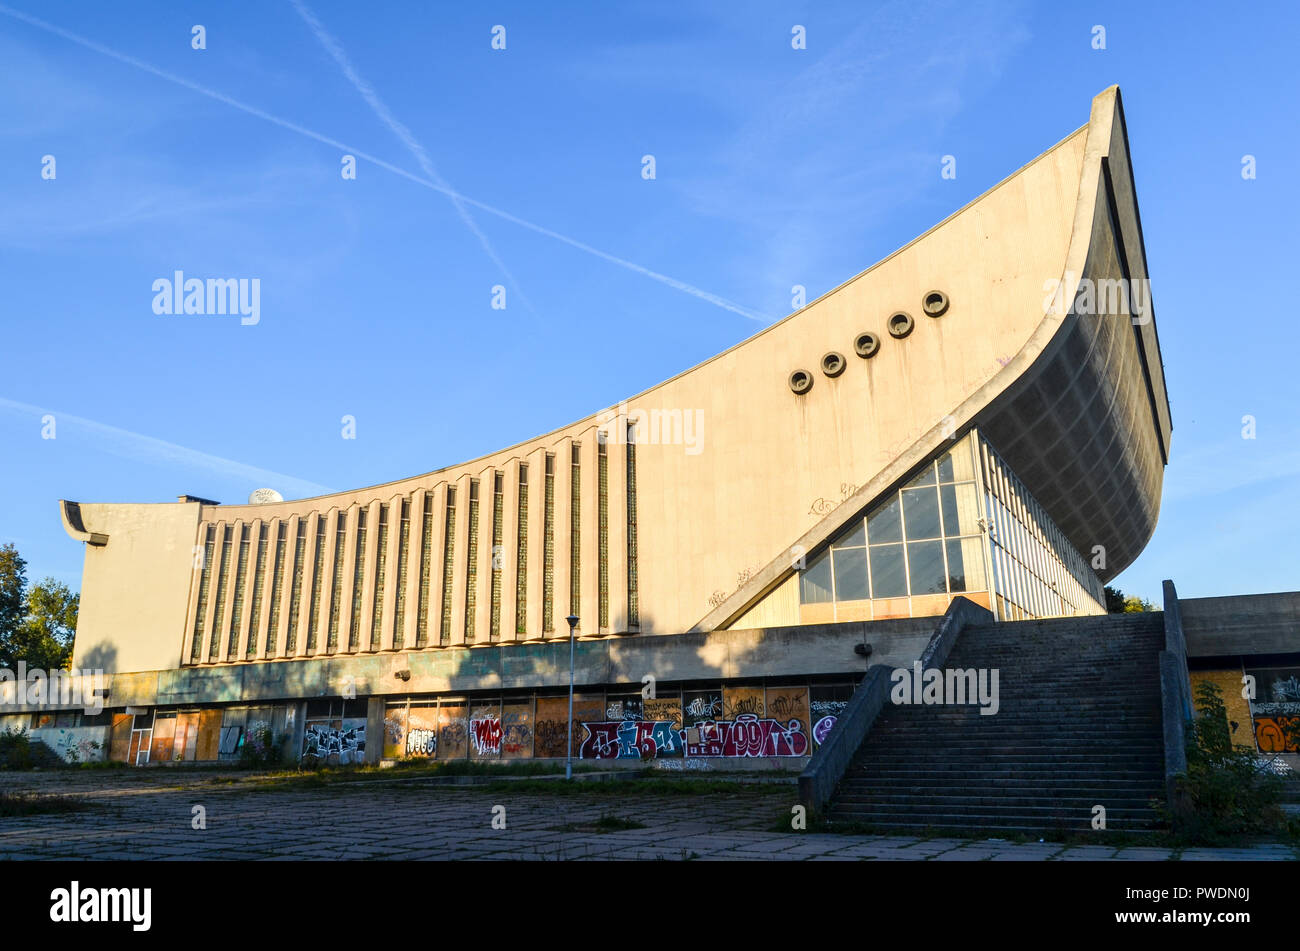 Vilnius Palace of Concerts and Sports, a large disused building by the Neris river - Stock Image